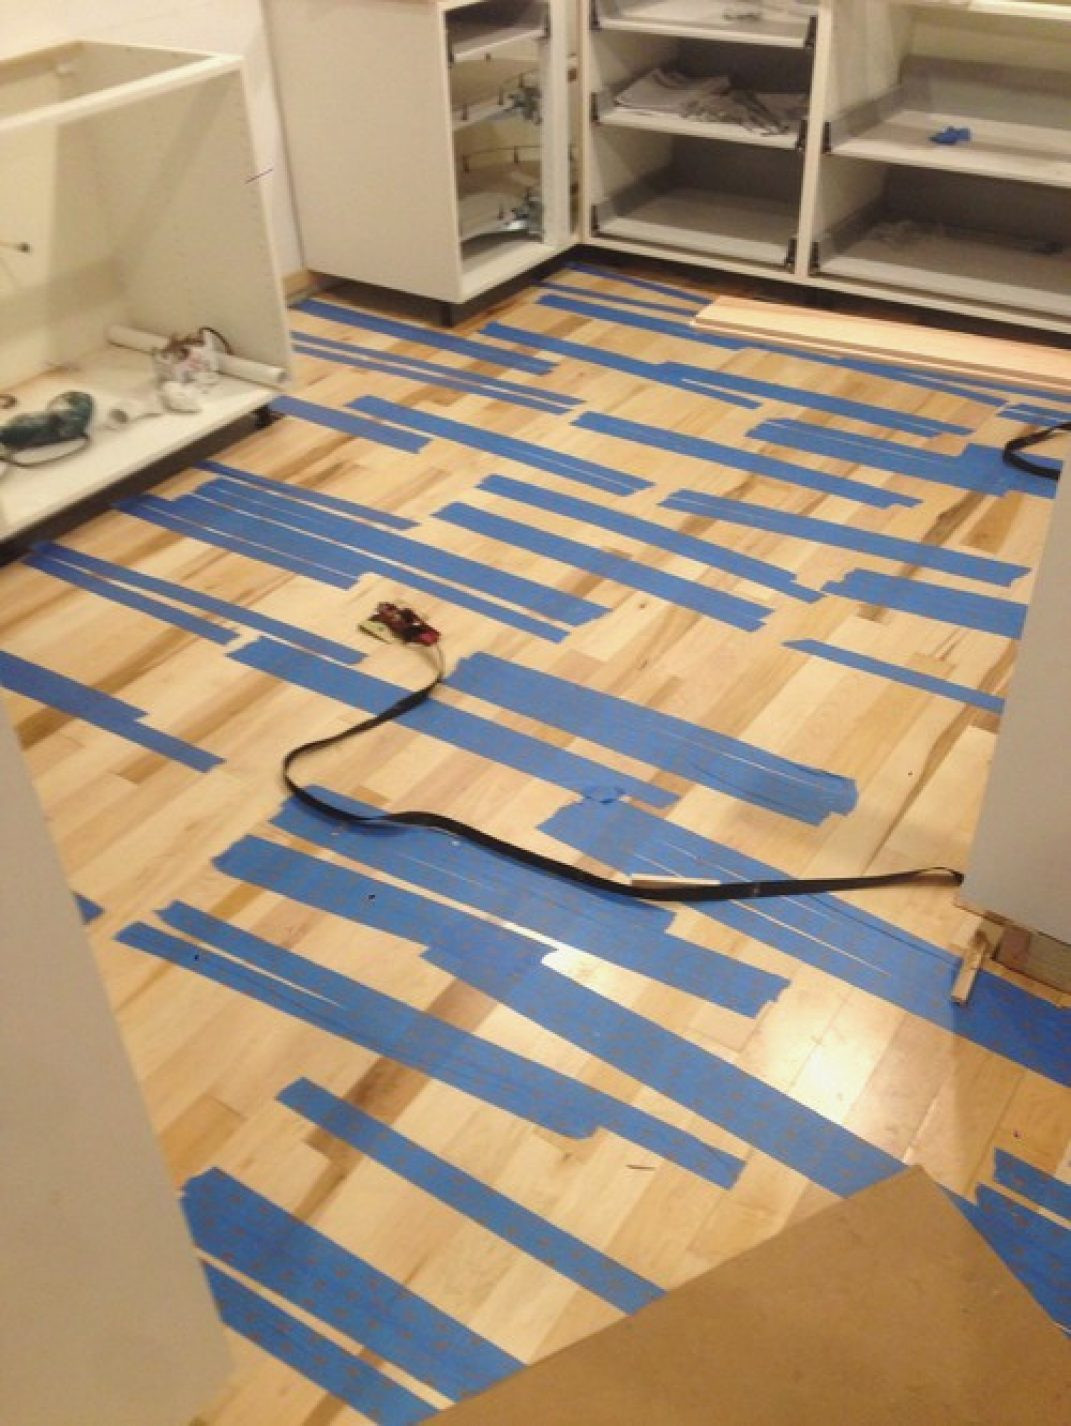 How to Lay Floating Hardwood Floor On Concrete Of Wood Flooring Glue Gluing Down Prefinished solid Hardwood Floors Pertaining to Wood Flooring Glue Gluing Down Prefinished solid Hardwood Floors Directly Quintessence Engineered Concrete Bouniqueaz Com